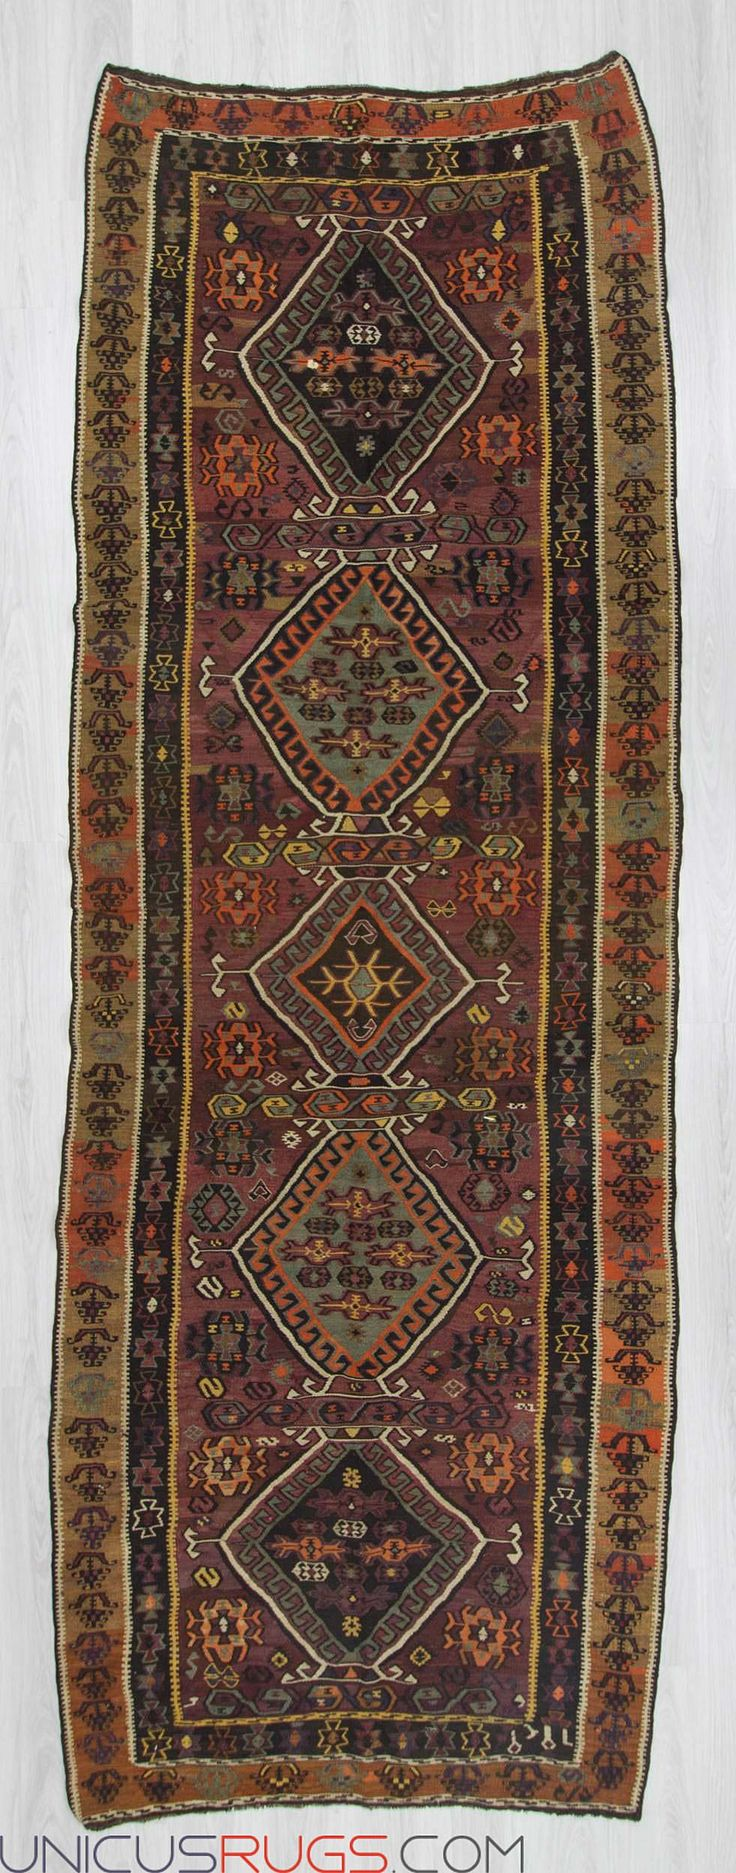 "Vintage kilim rug from Kars region of Turkey.In good condition.Approximately 55-65 years old Width: 4' 6"" - Length: 12' 7""  Colorful Kilims"